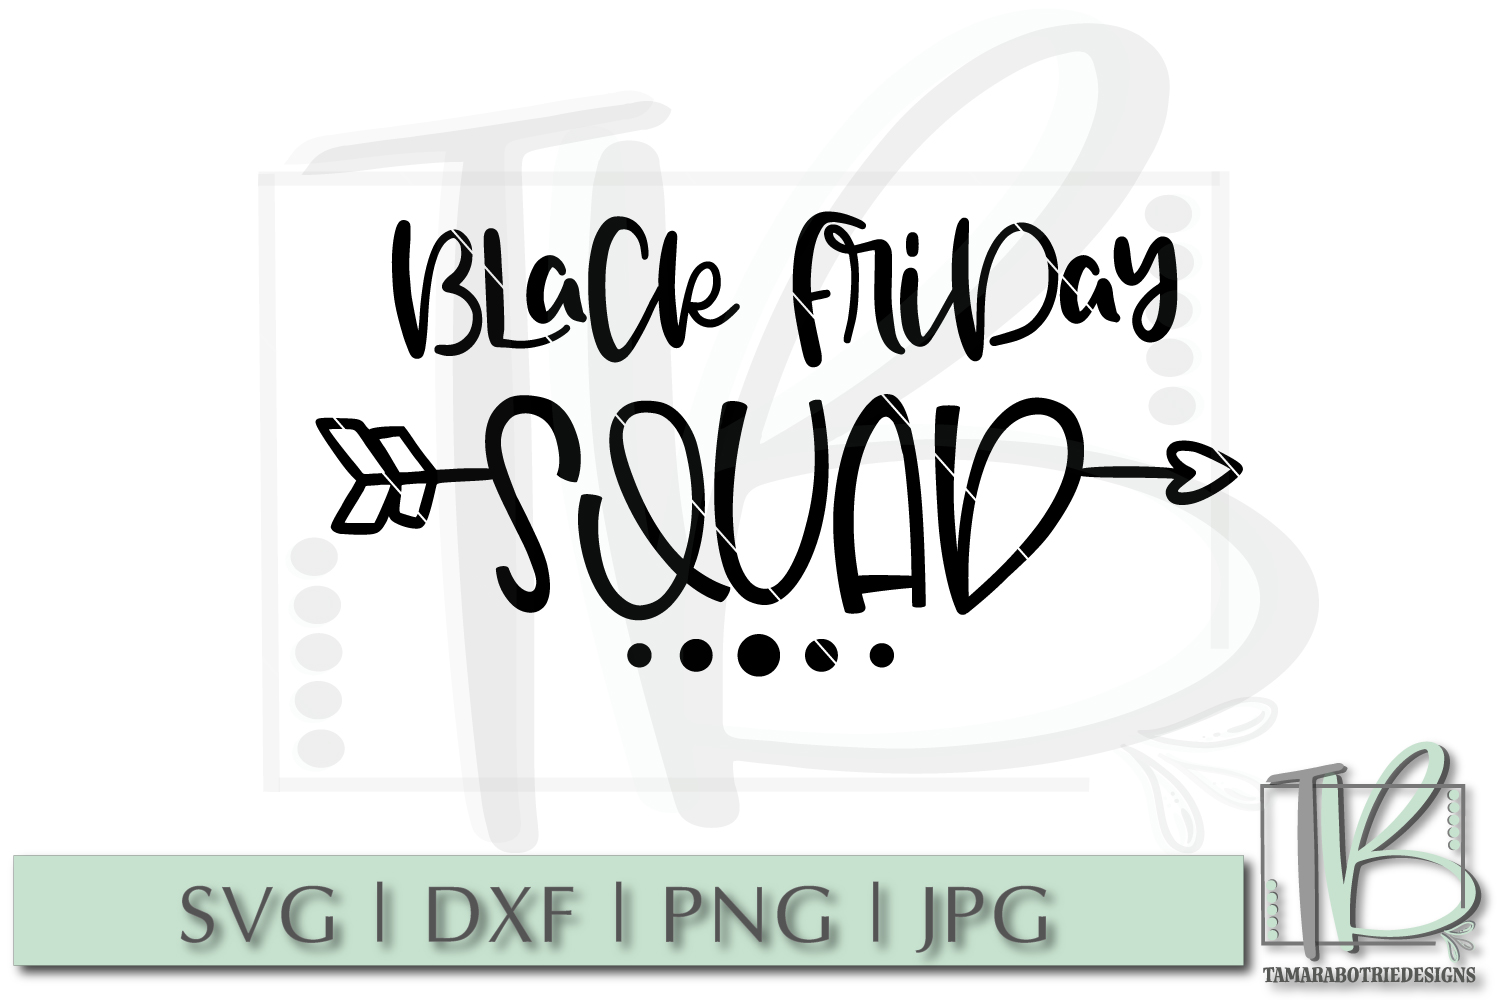 Black Friday SVG File, Black Friday Squad SVG example image 2